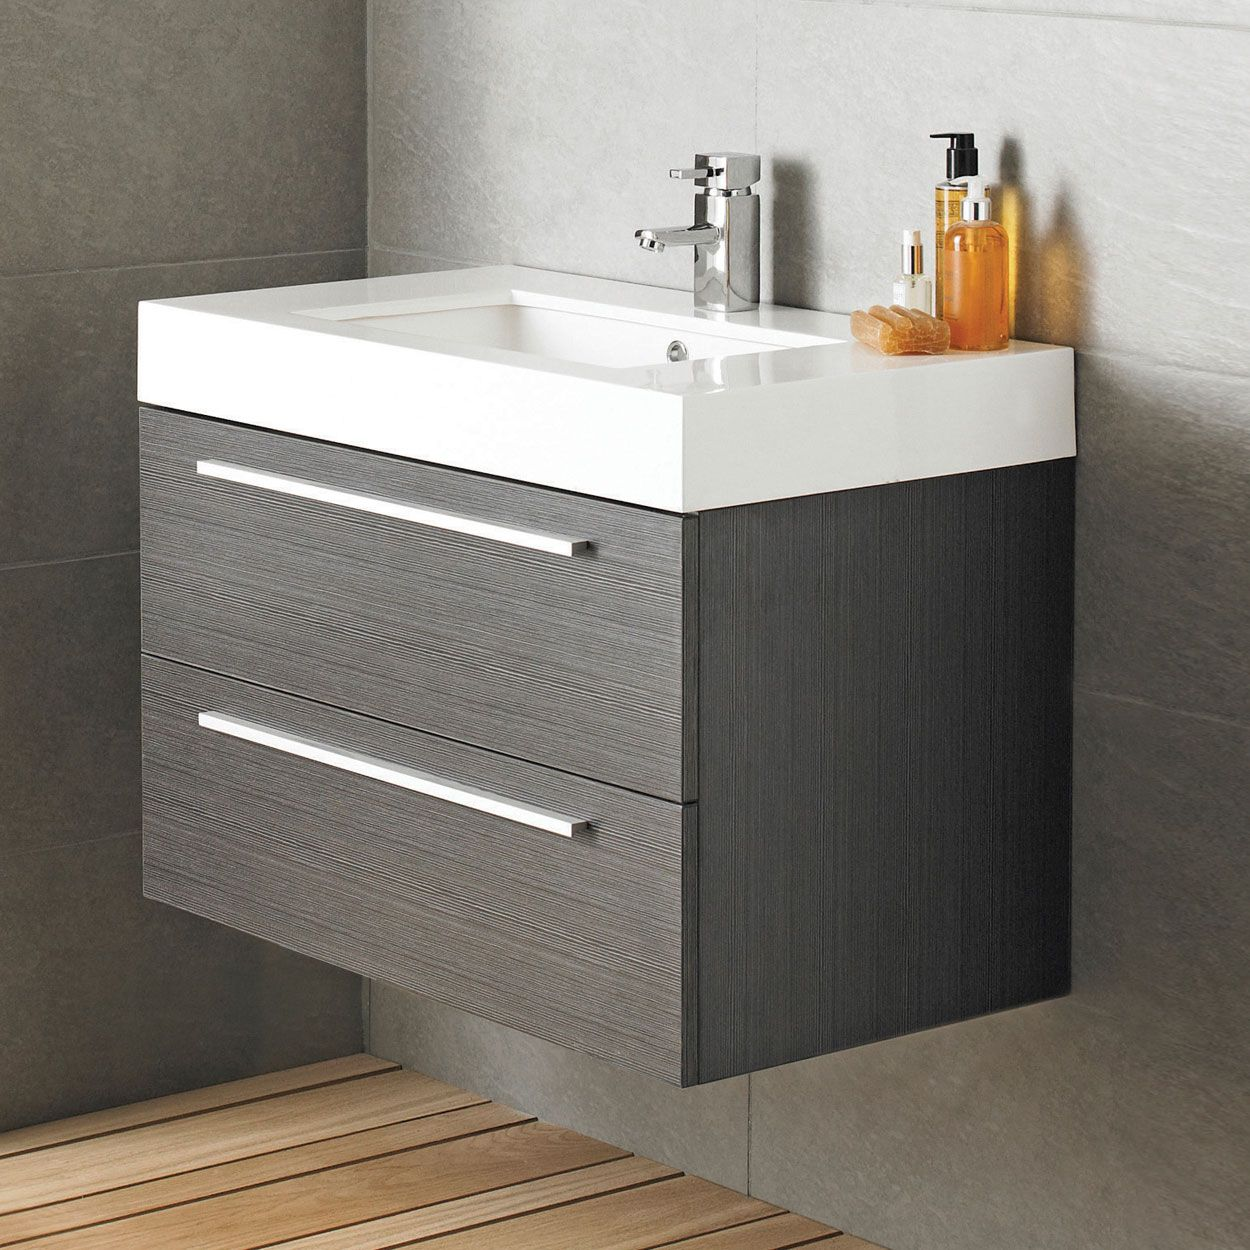 Minimalist And Sophisticated Gray Bathroom Vanity Using